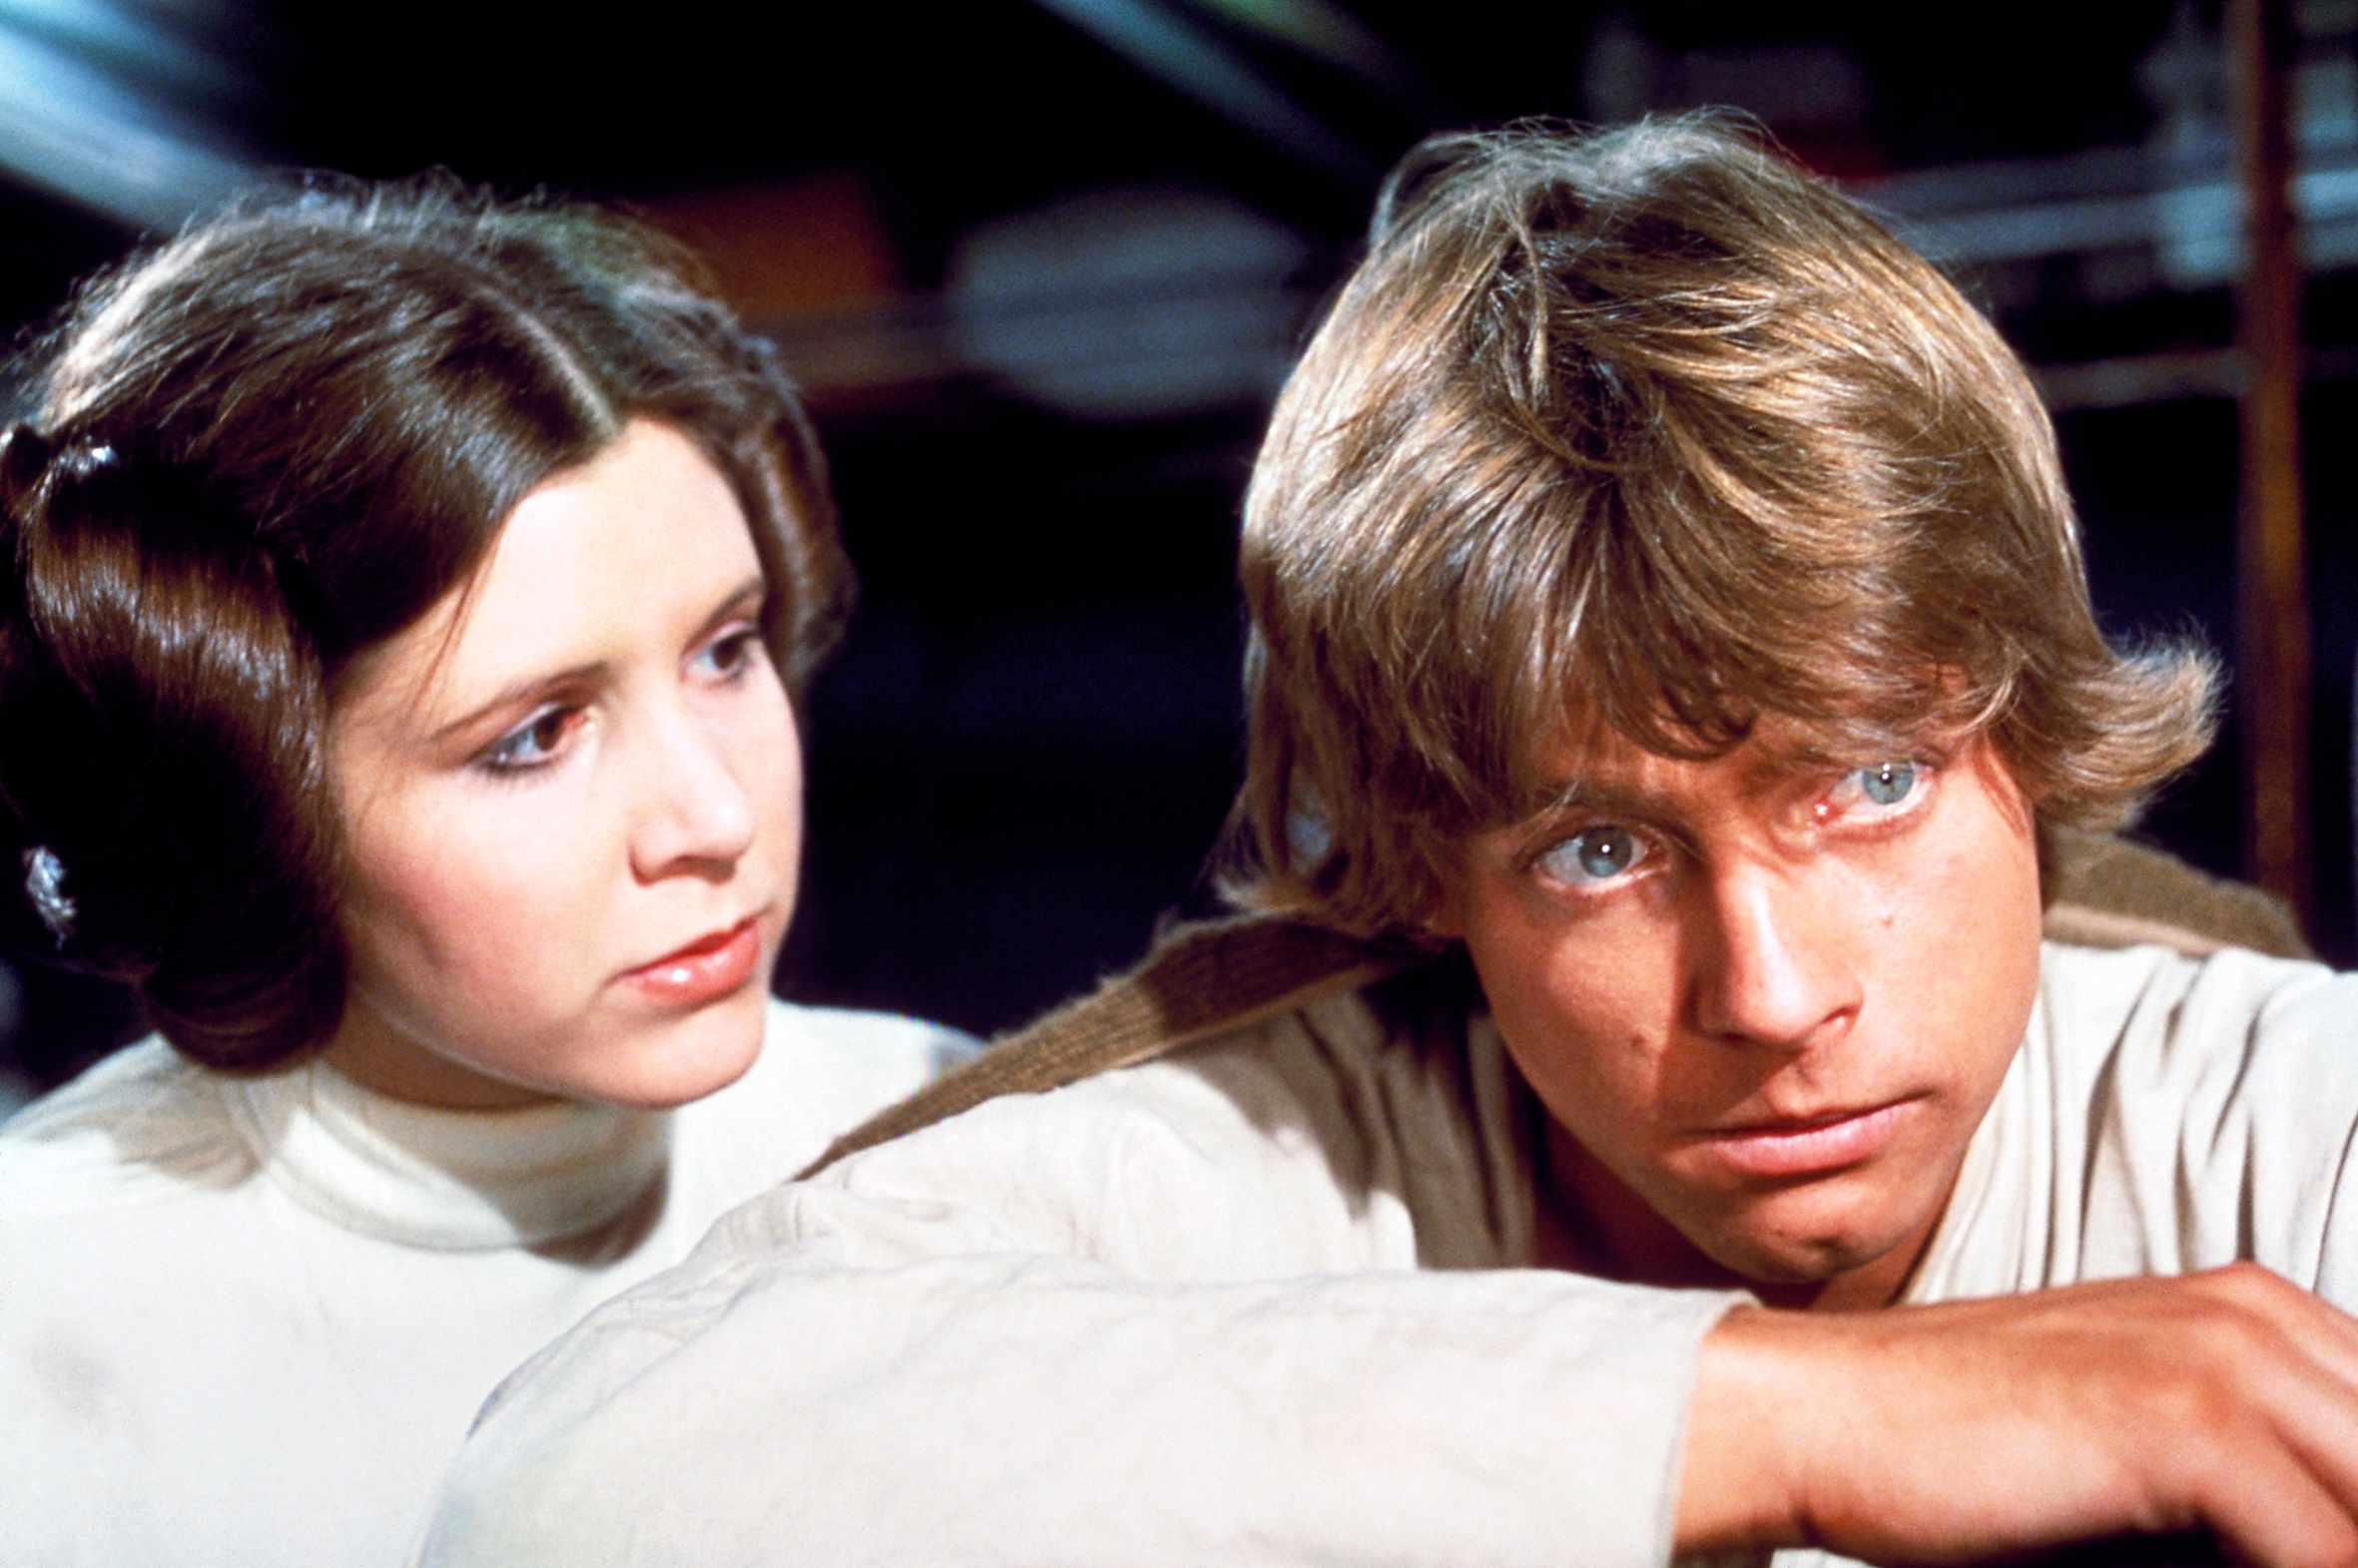 Star Wars Episode IV - A New Hope  Starring Carrie Fisher, Mark Hamill, Harrison Ford, Alec Guinness, Peter Cushing, Peter Mayhew, David Prowse Sky pics, Lucasfilm TL